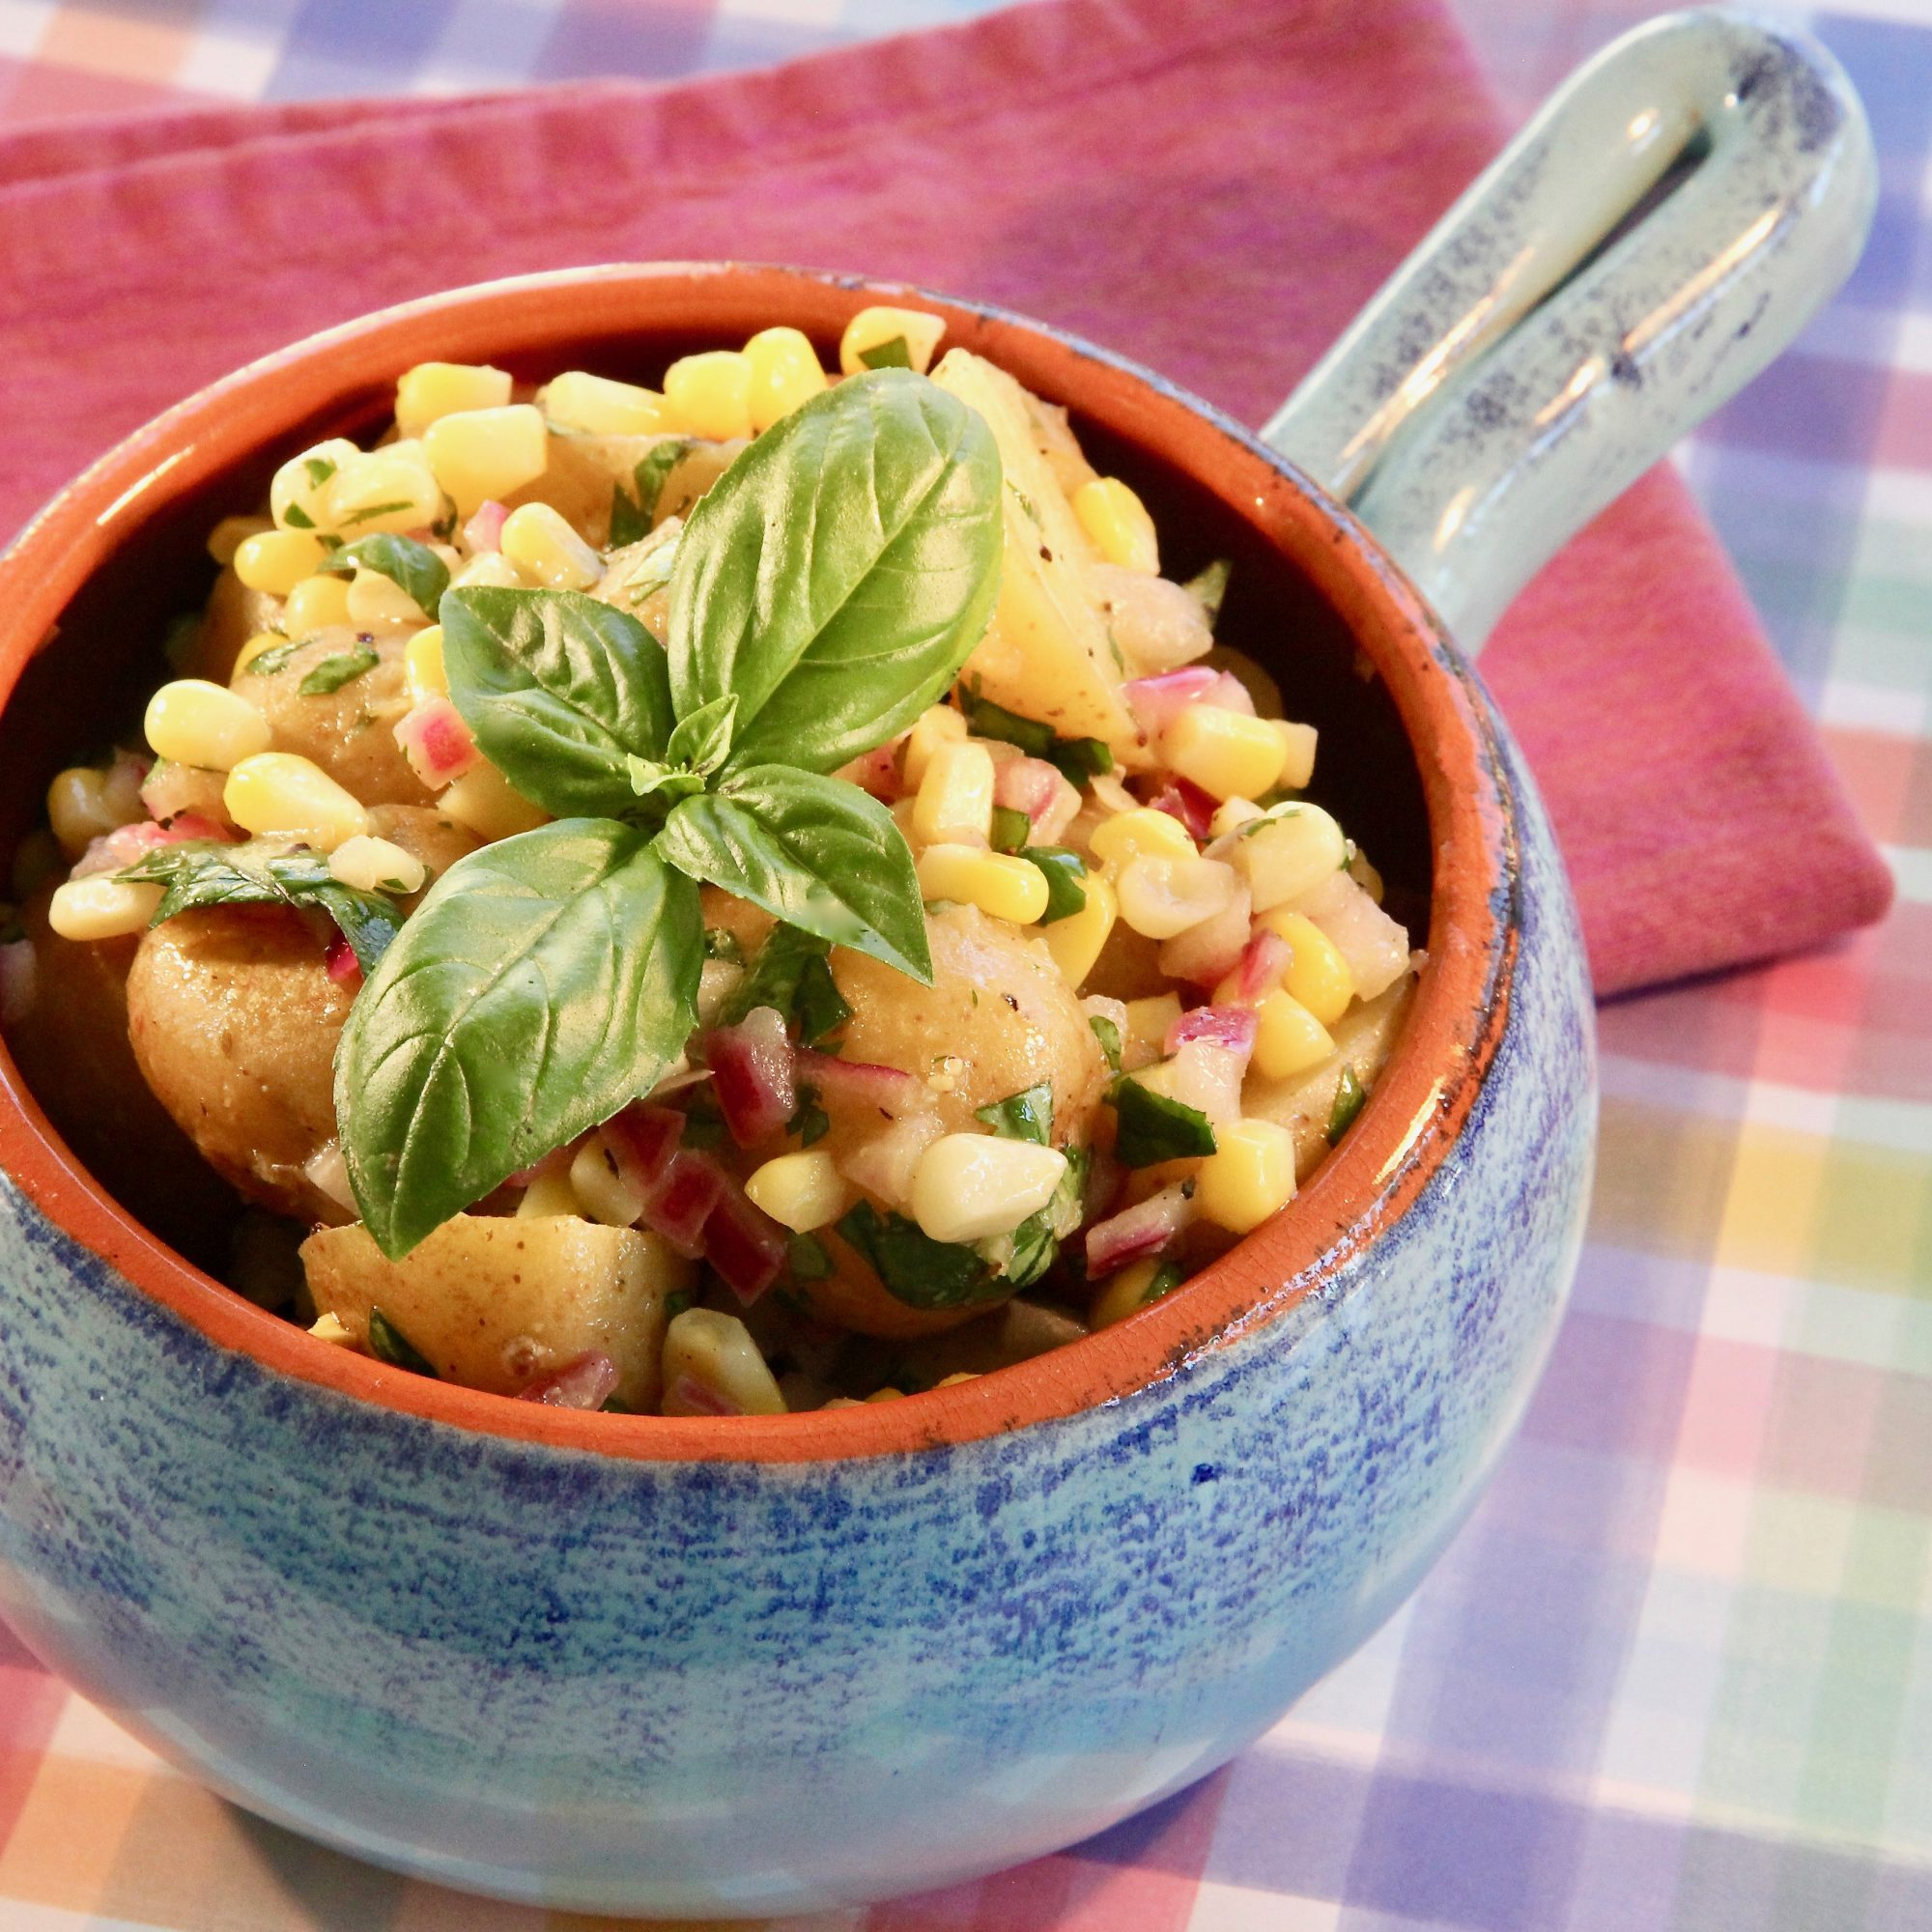 Corn & Potato Salad